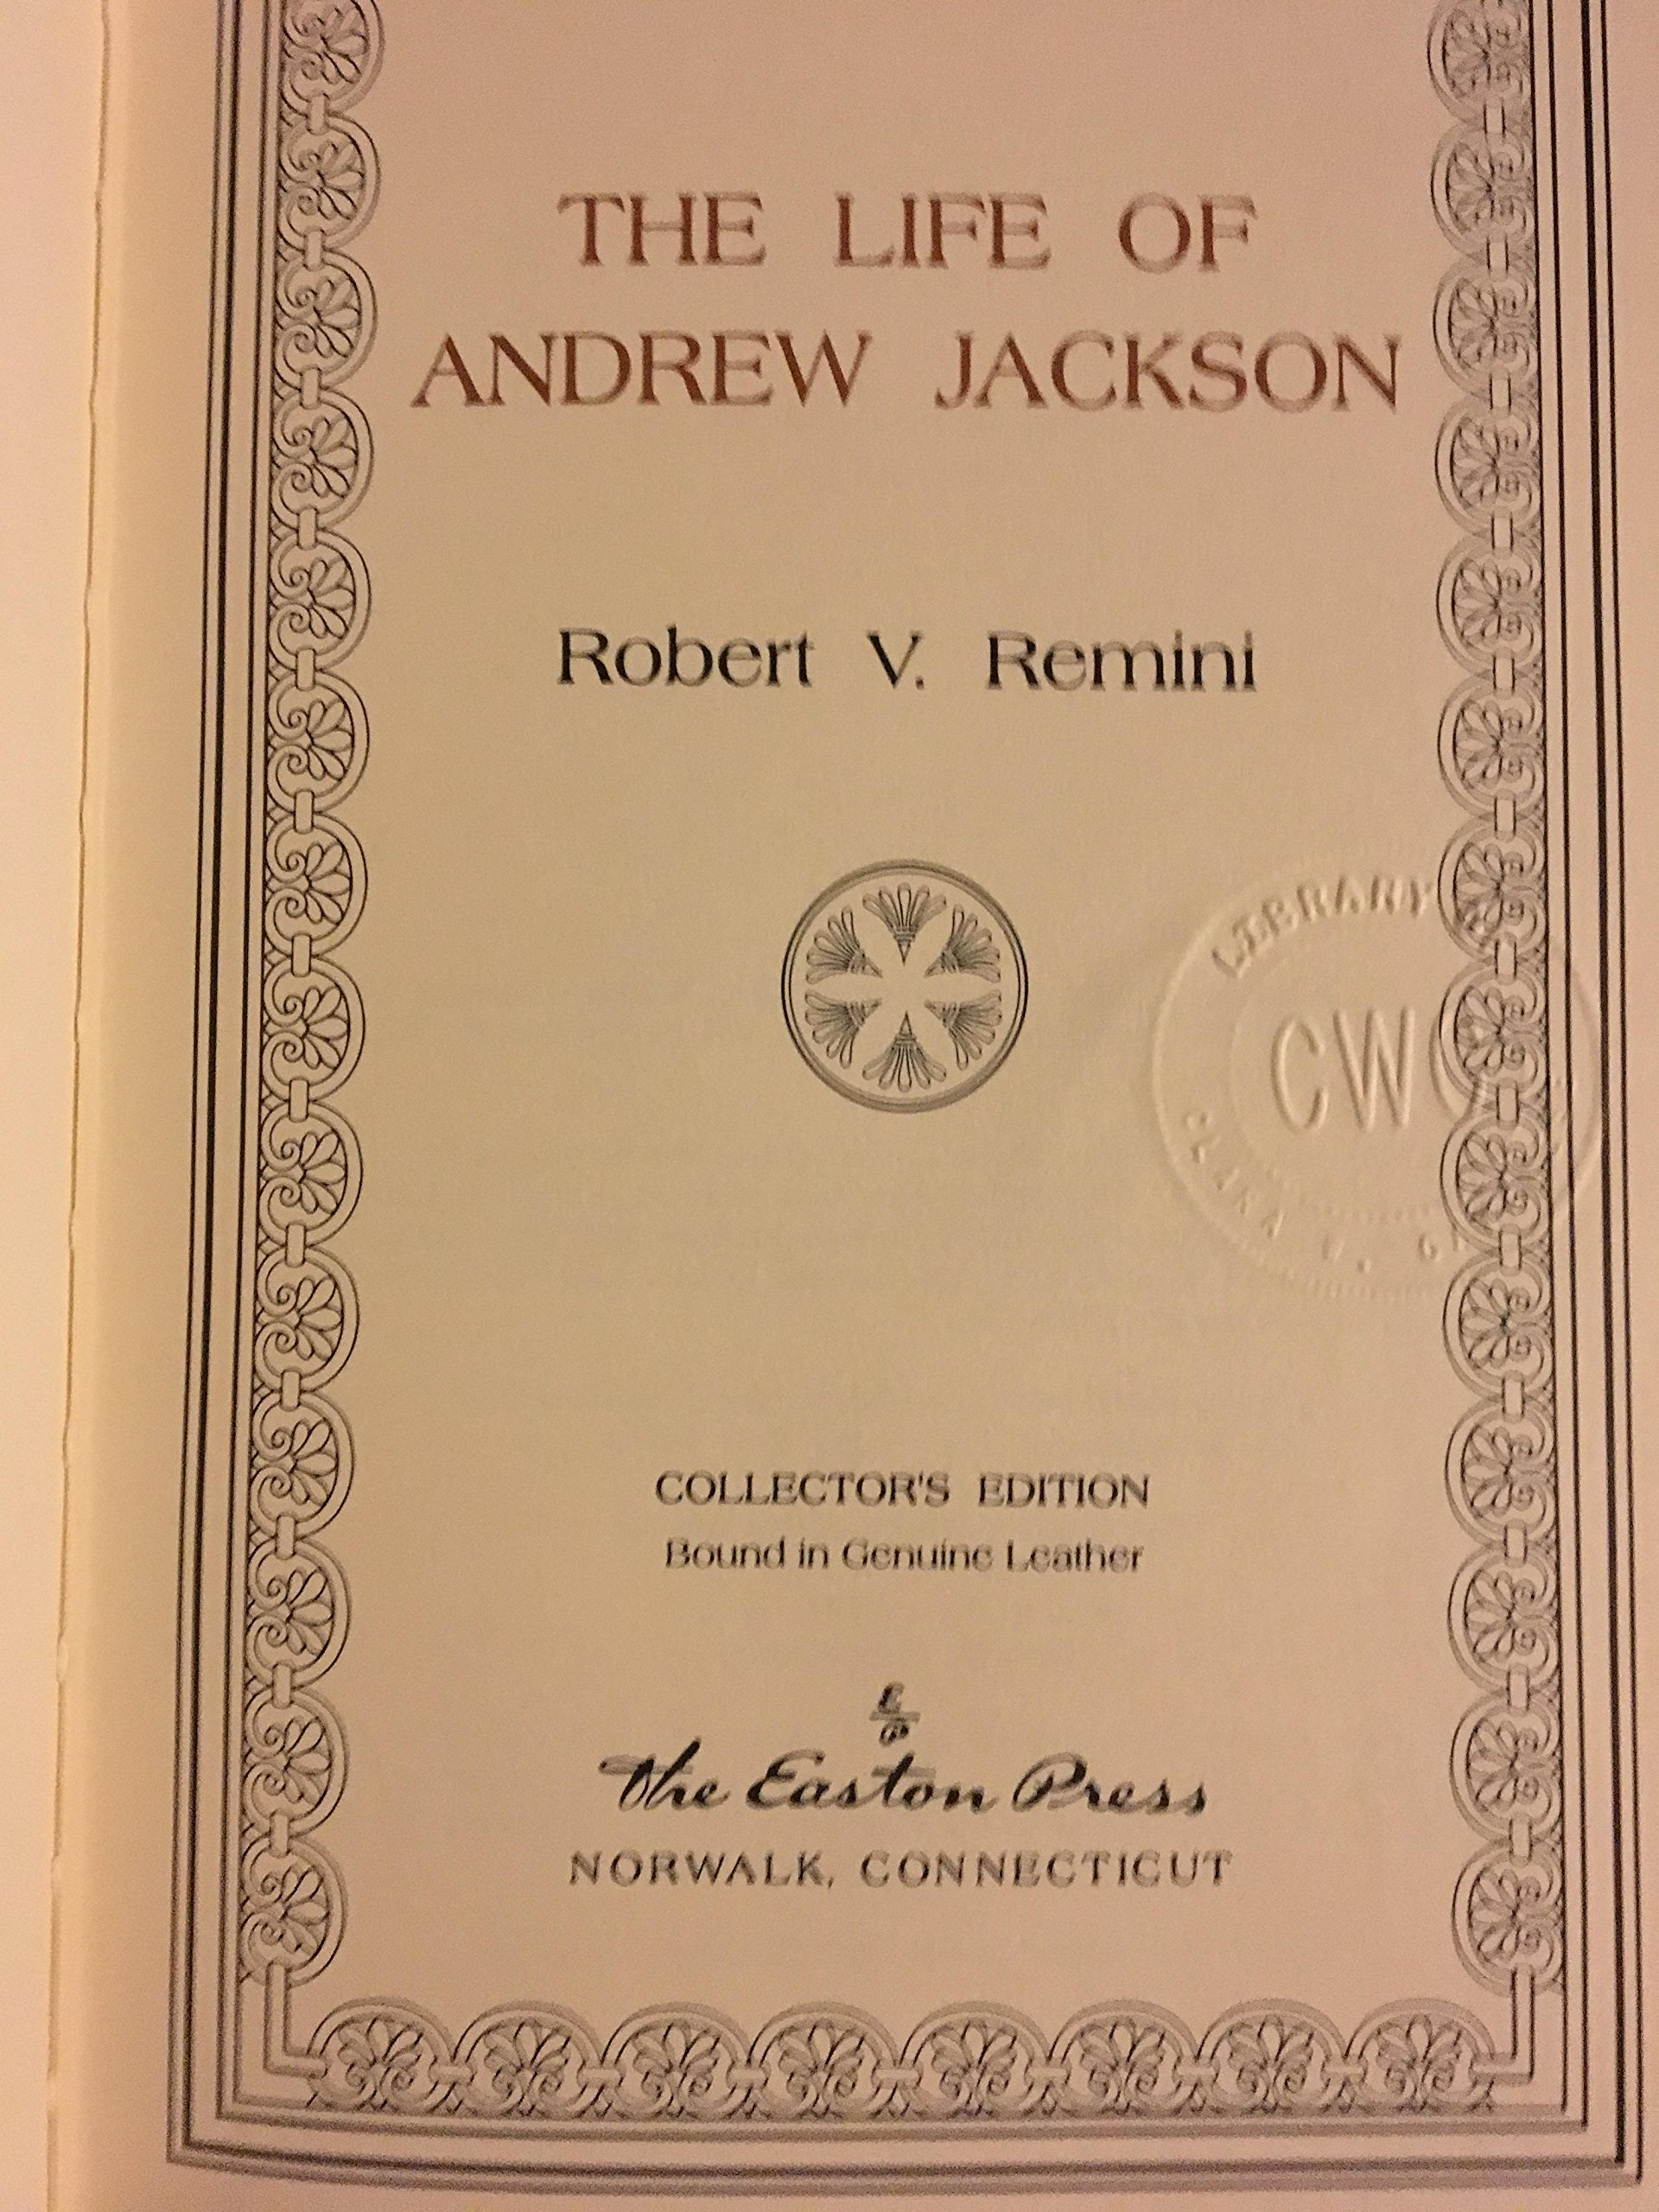 The Life of Andrew Jackson [Easton Press]: Robert V. Remini: Amazon.com:  Books